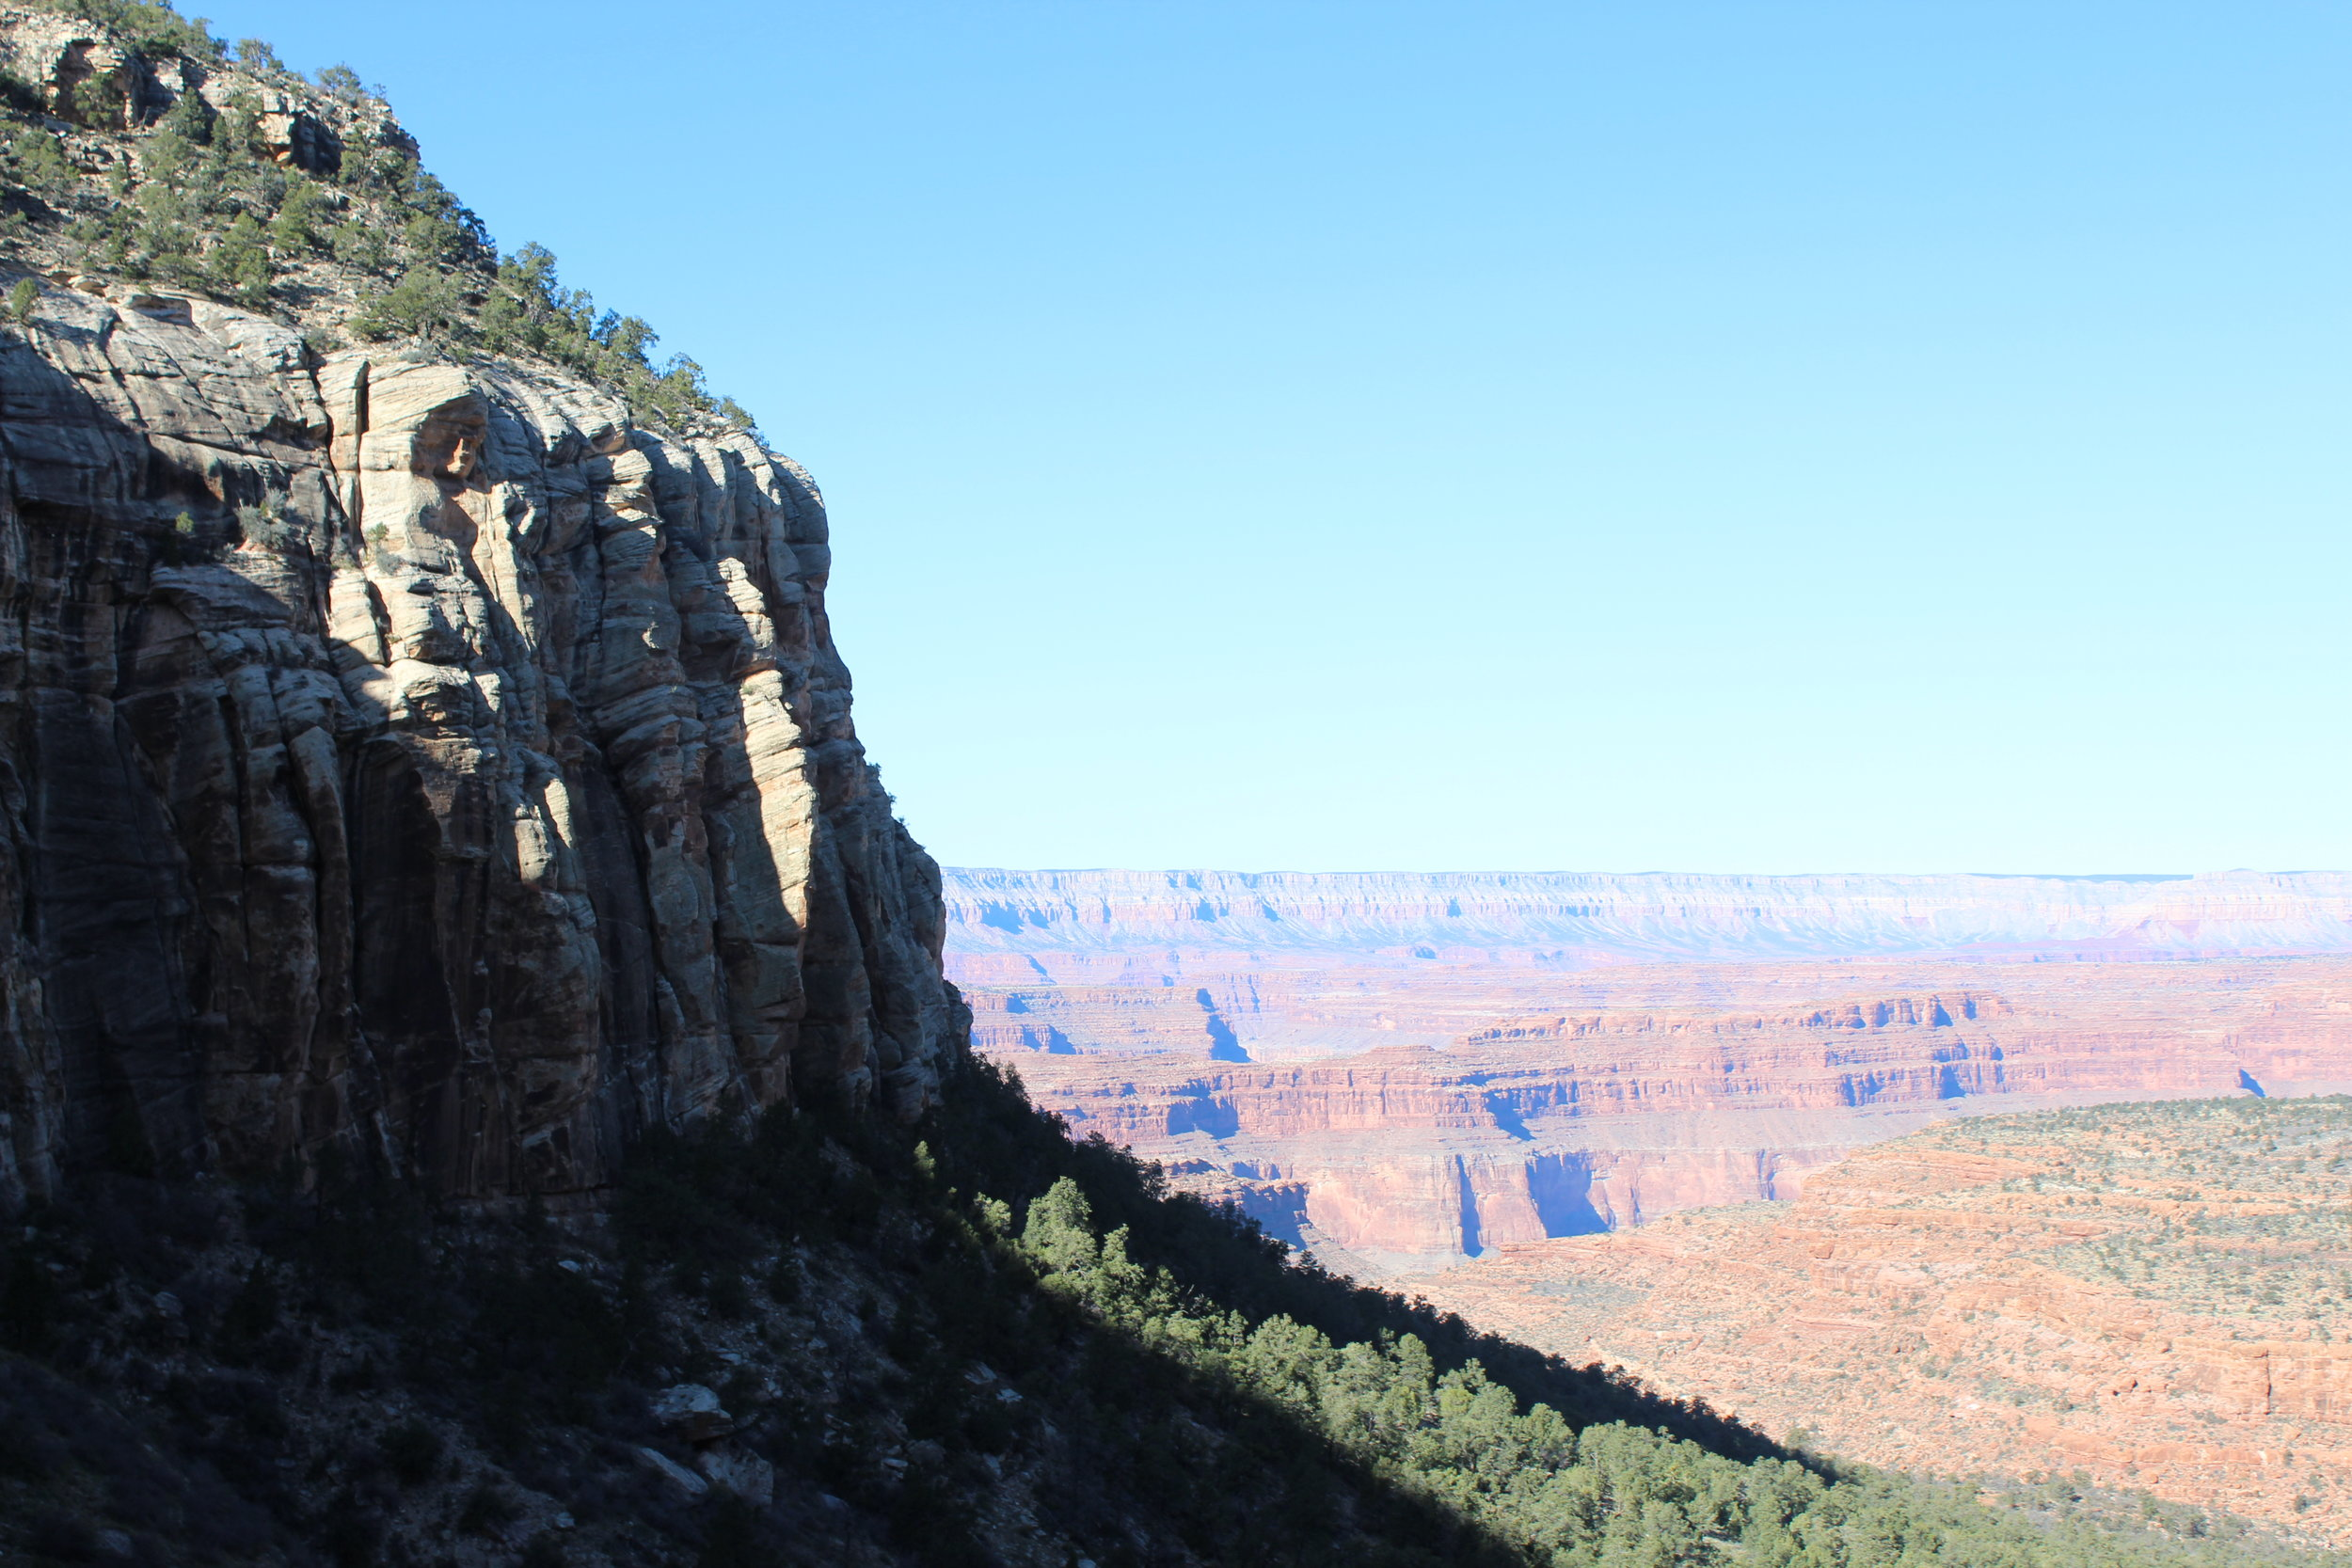 Only a few spots penetrate the sheer Coconino cliffs